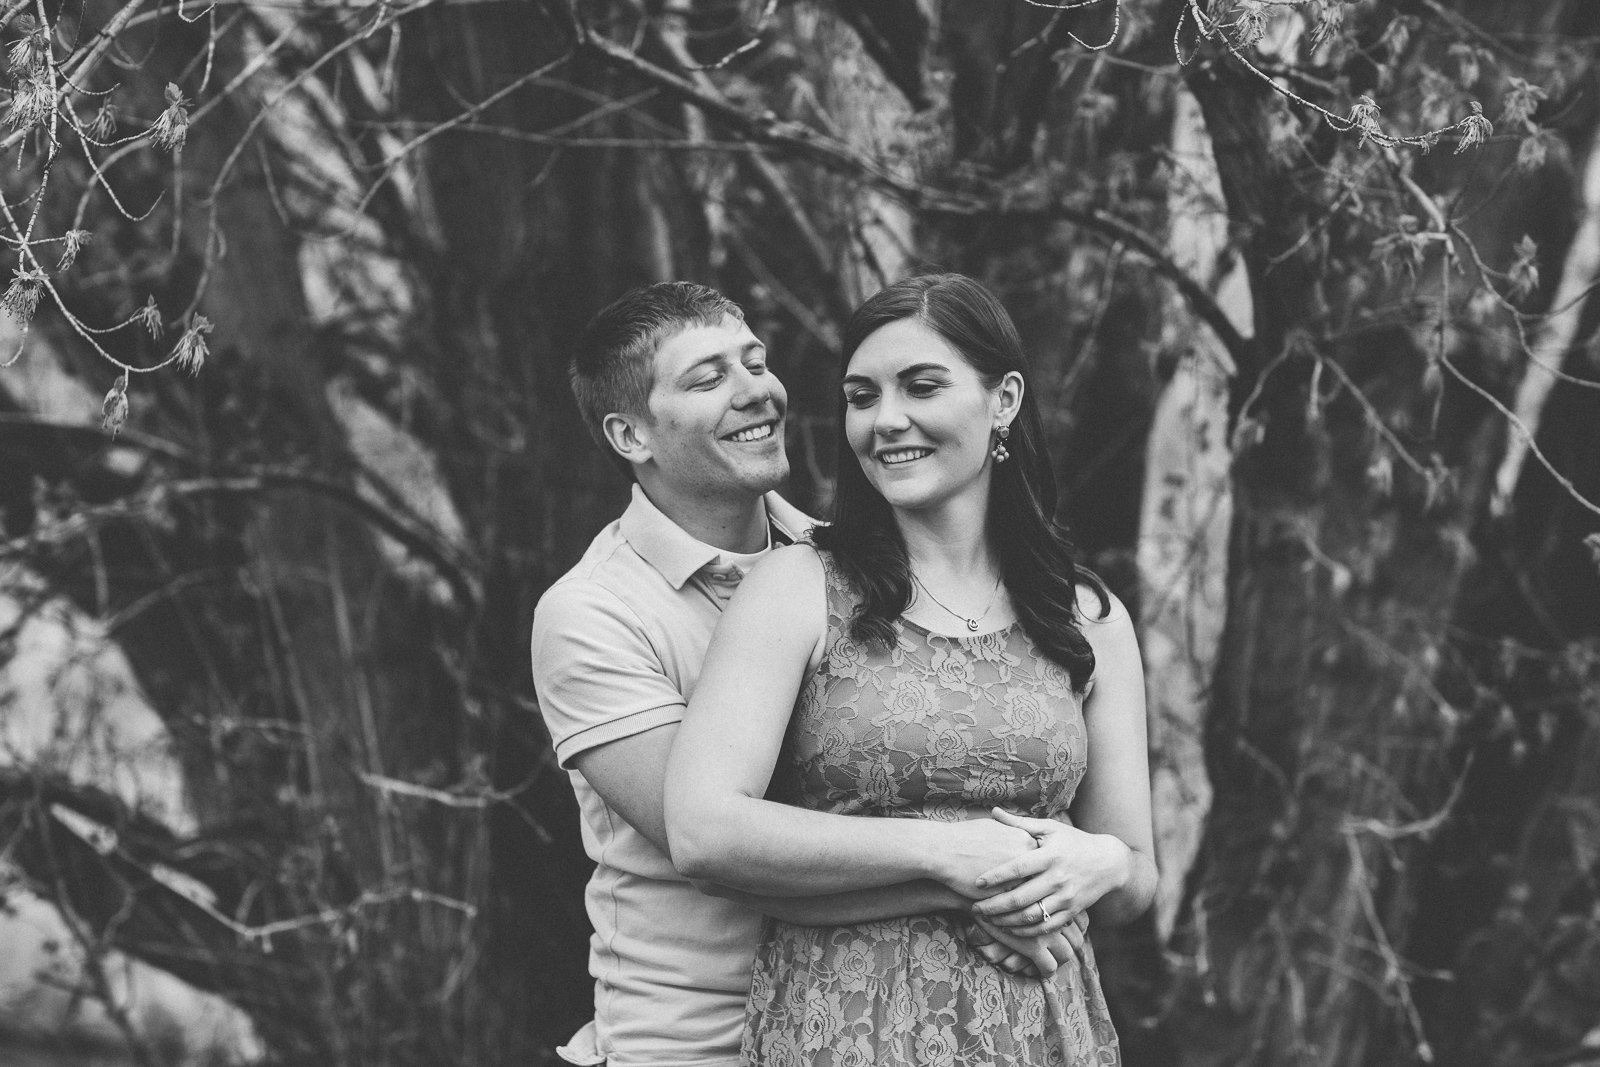 026-engagement-trees-fun-wedding-train-aughing-durango-colorado-farmington